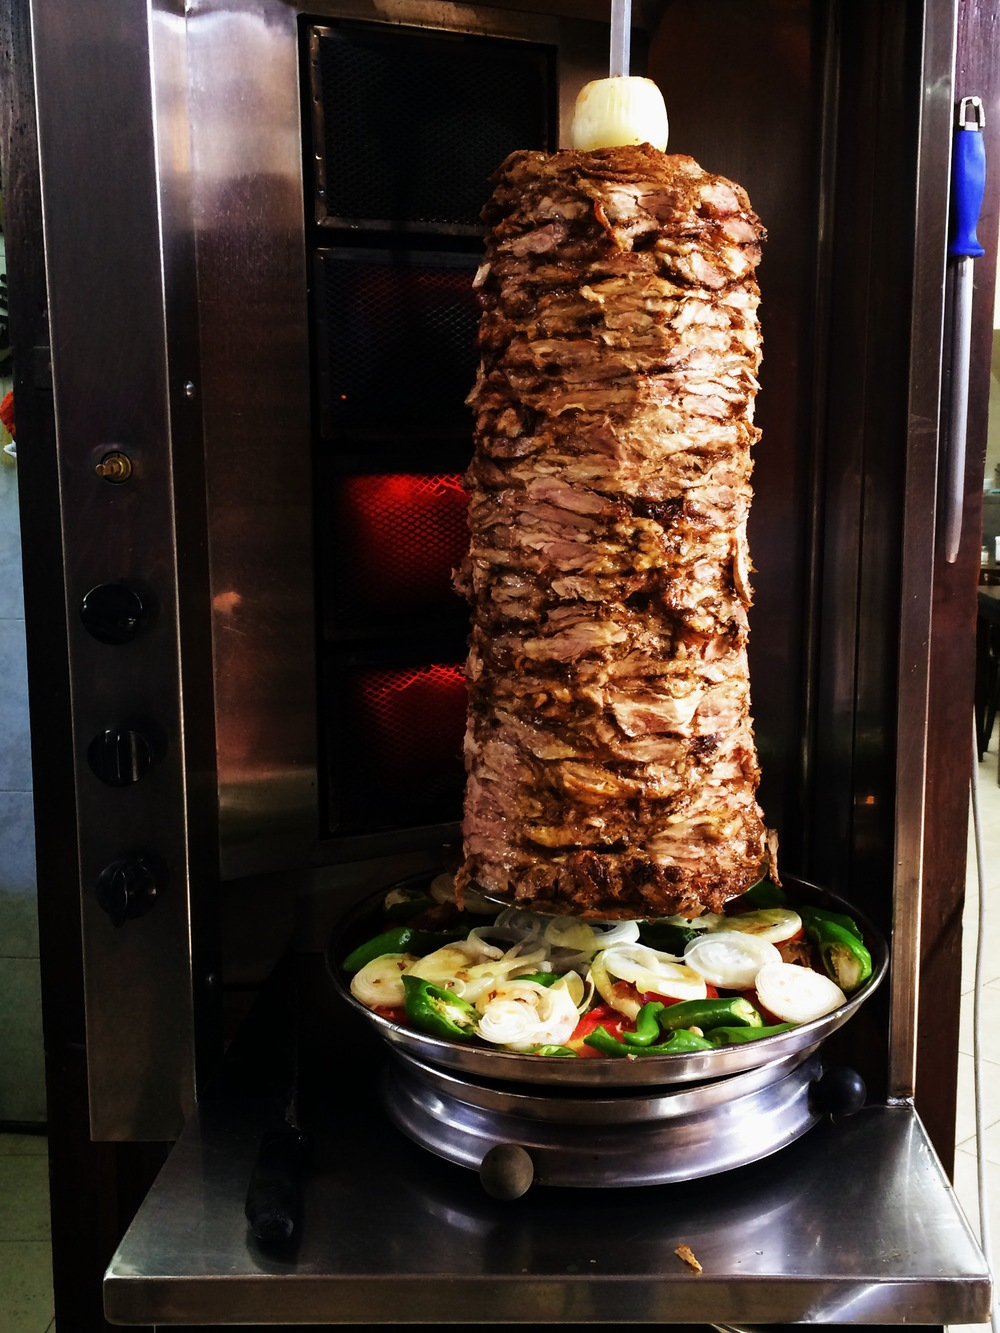 Israeli cuisine is not ethnically original but rather is a confluence of its immigrant. Like the Shawarma, an originally Arabic import, it is not rather commonly found in every market in the country. Yet, it is decidedly different in flavor from the ones I taste in Turkey.